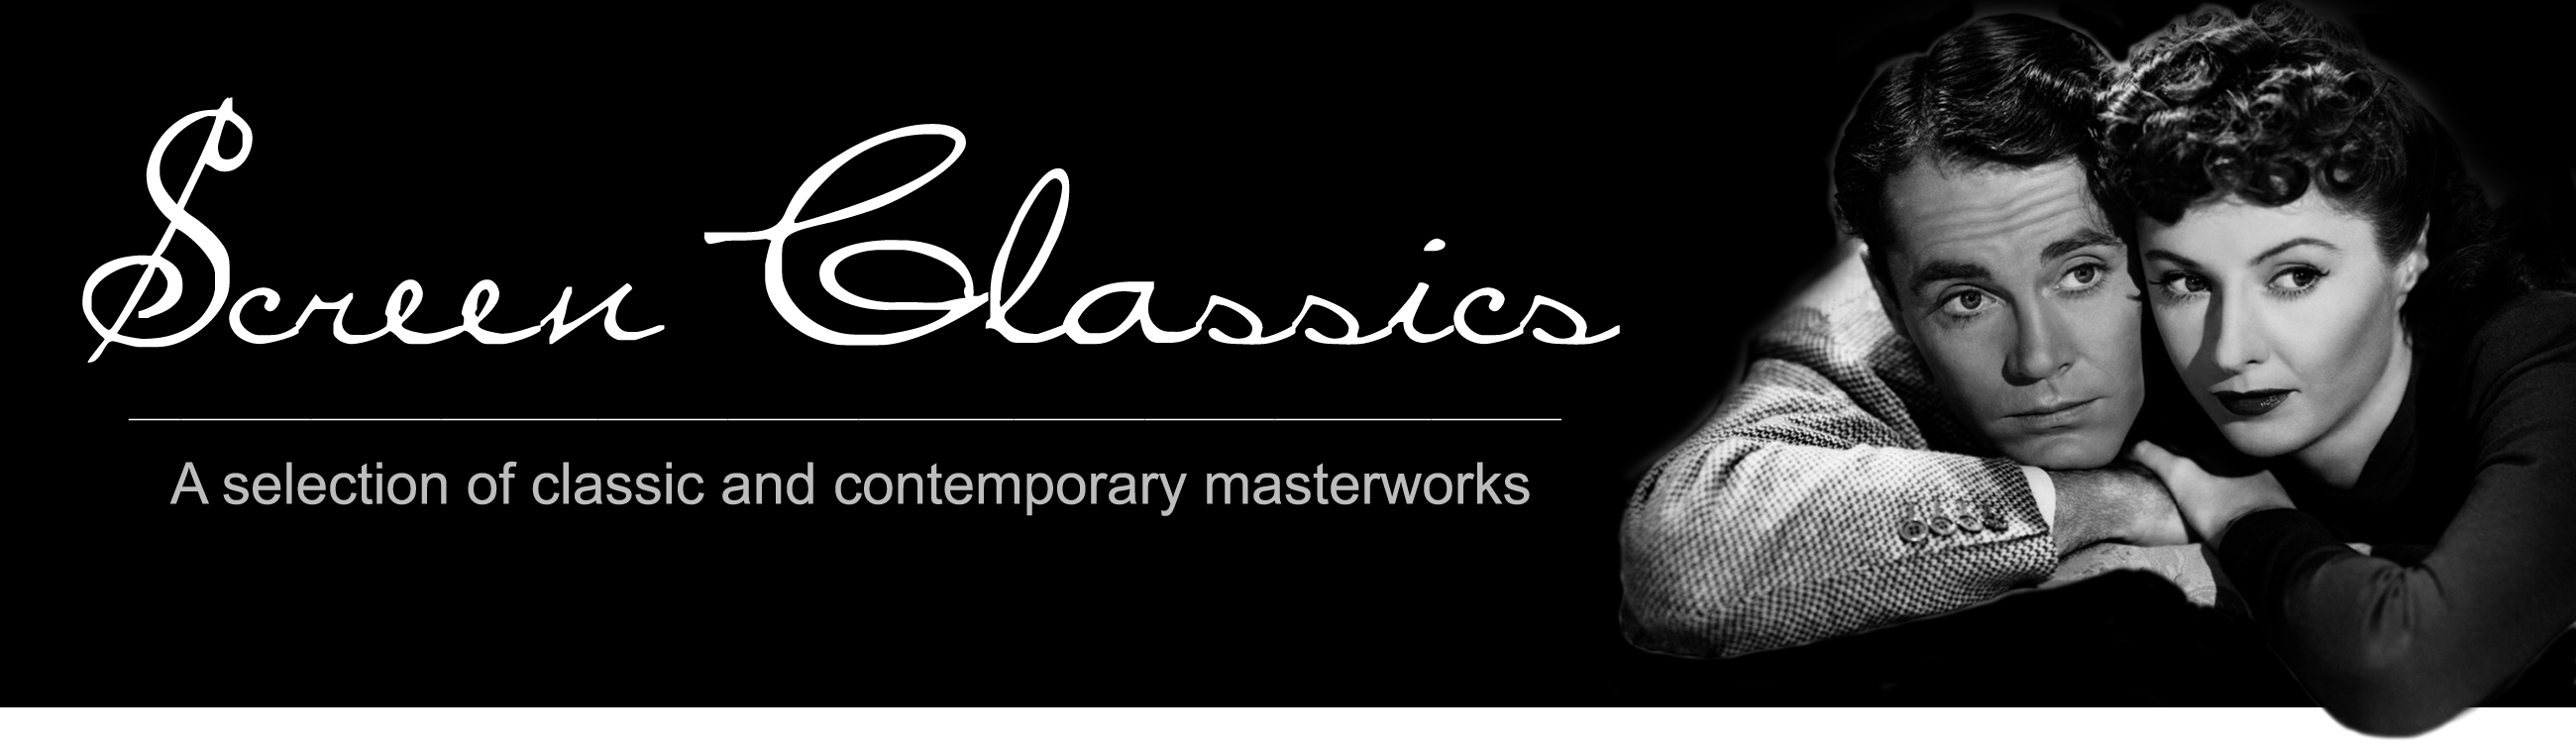 SCREEN-CLASSICS-BANNER-HD.png